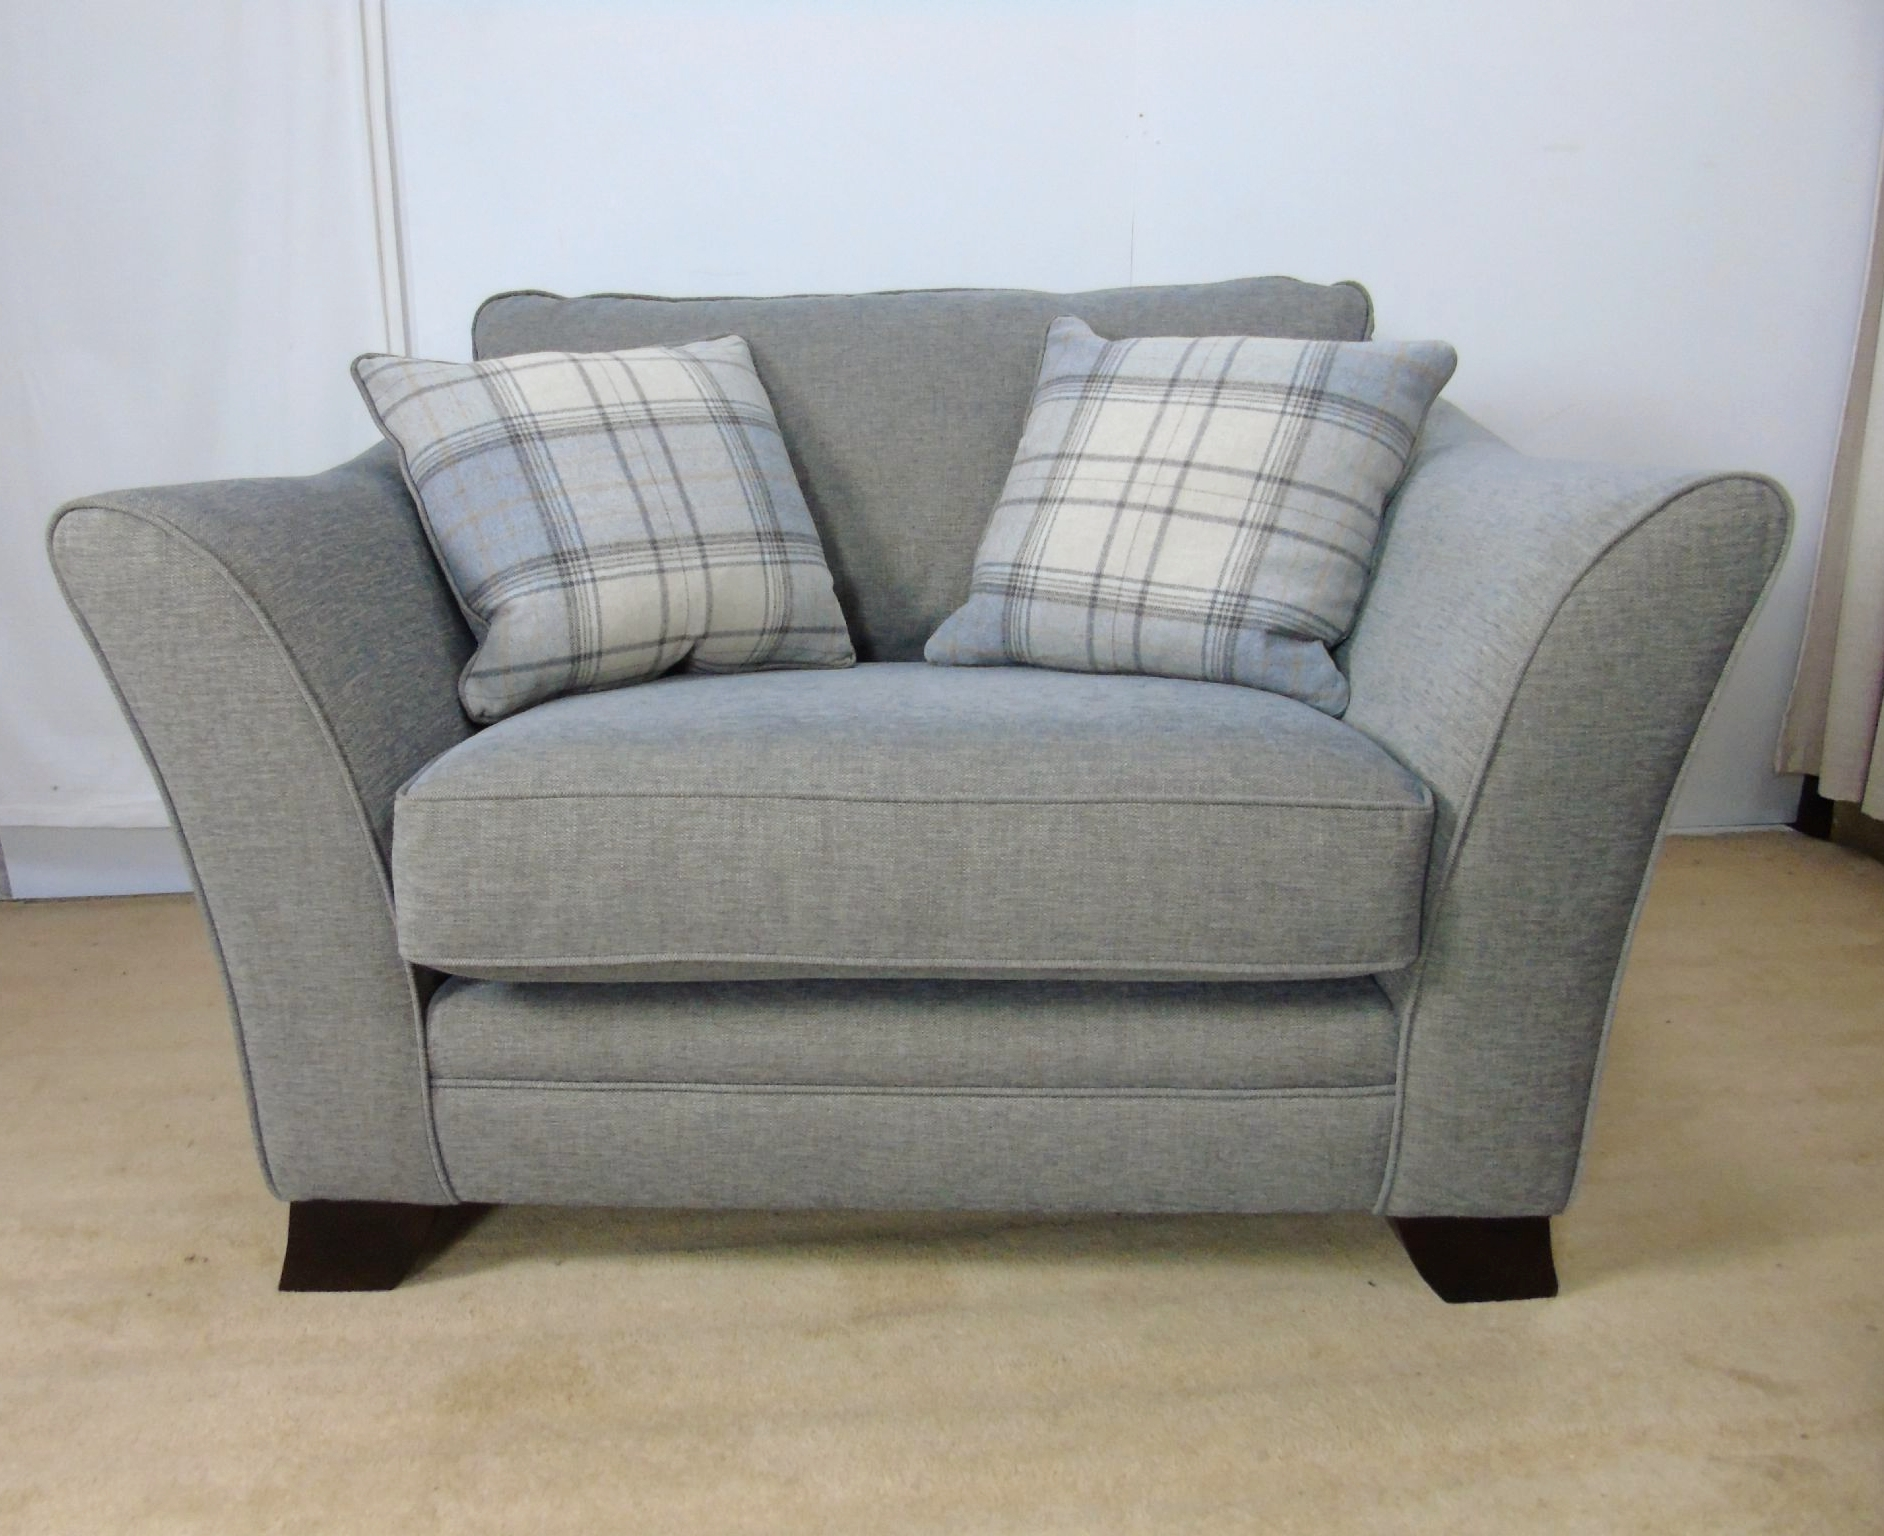 Snuggle Sofas Within Favorite Annalise Snuggle Chair Hellas Grey (View 5 of 15)